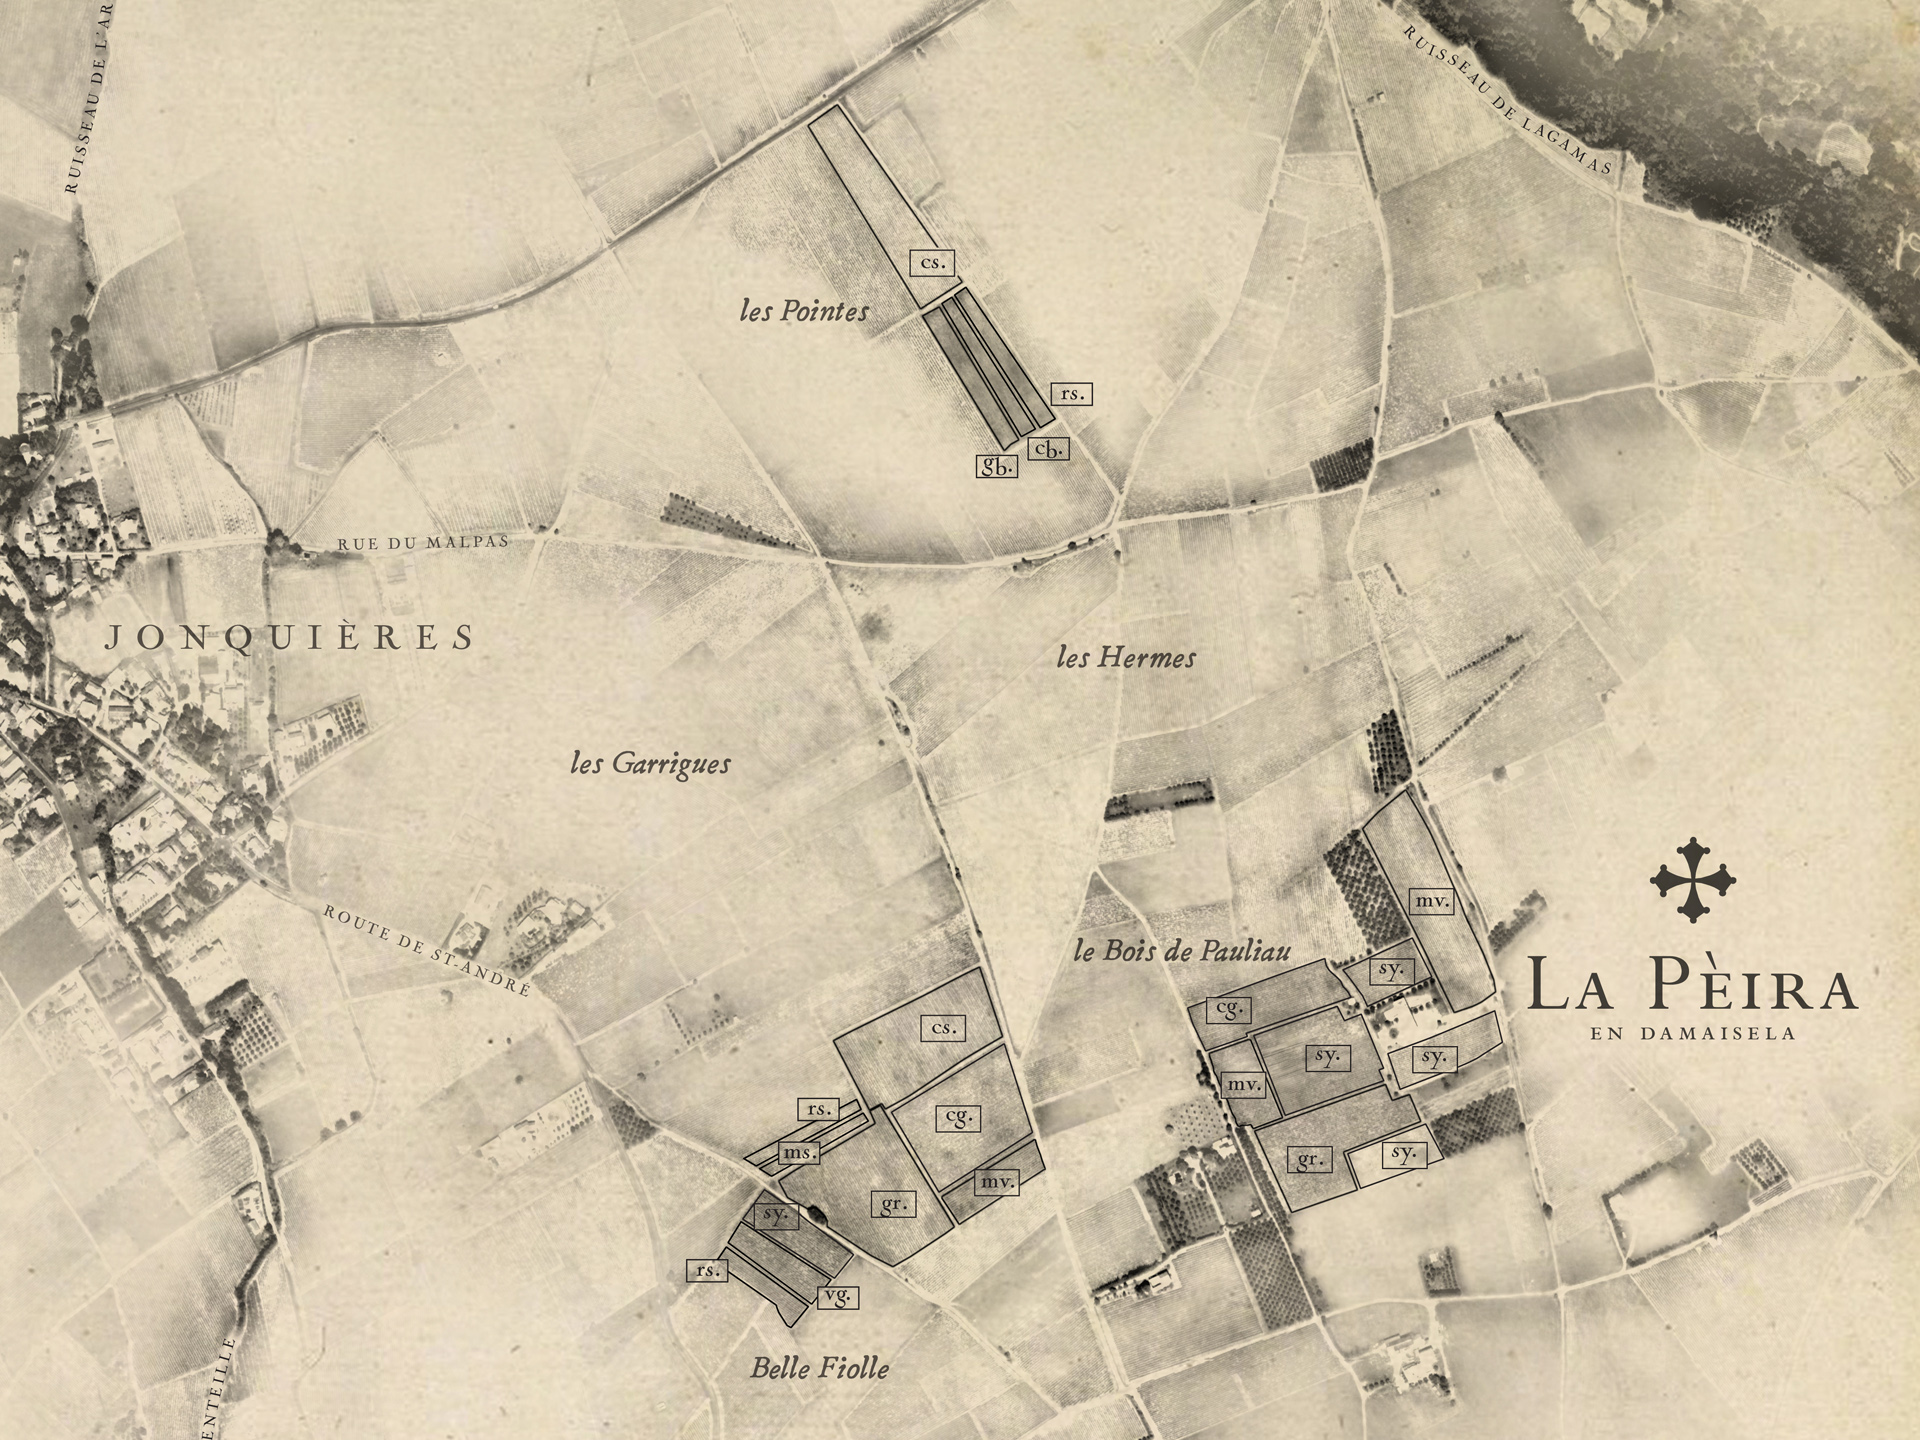 La Peira map detail